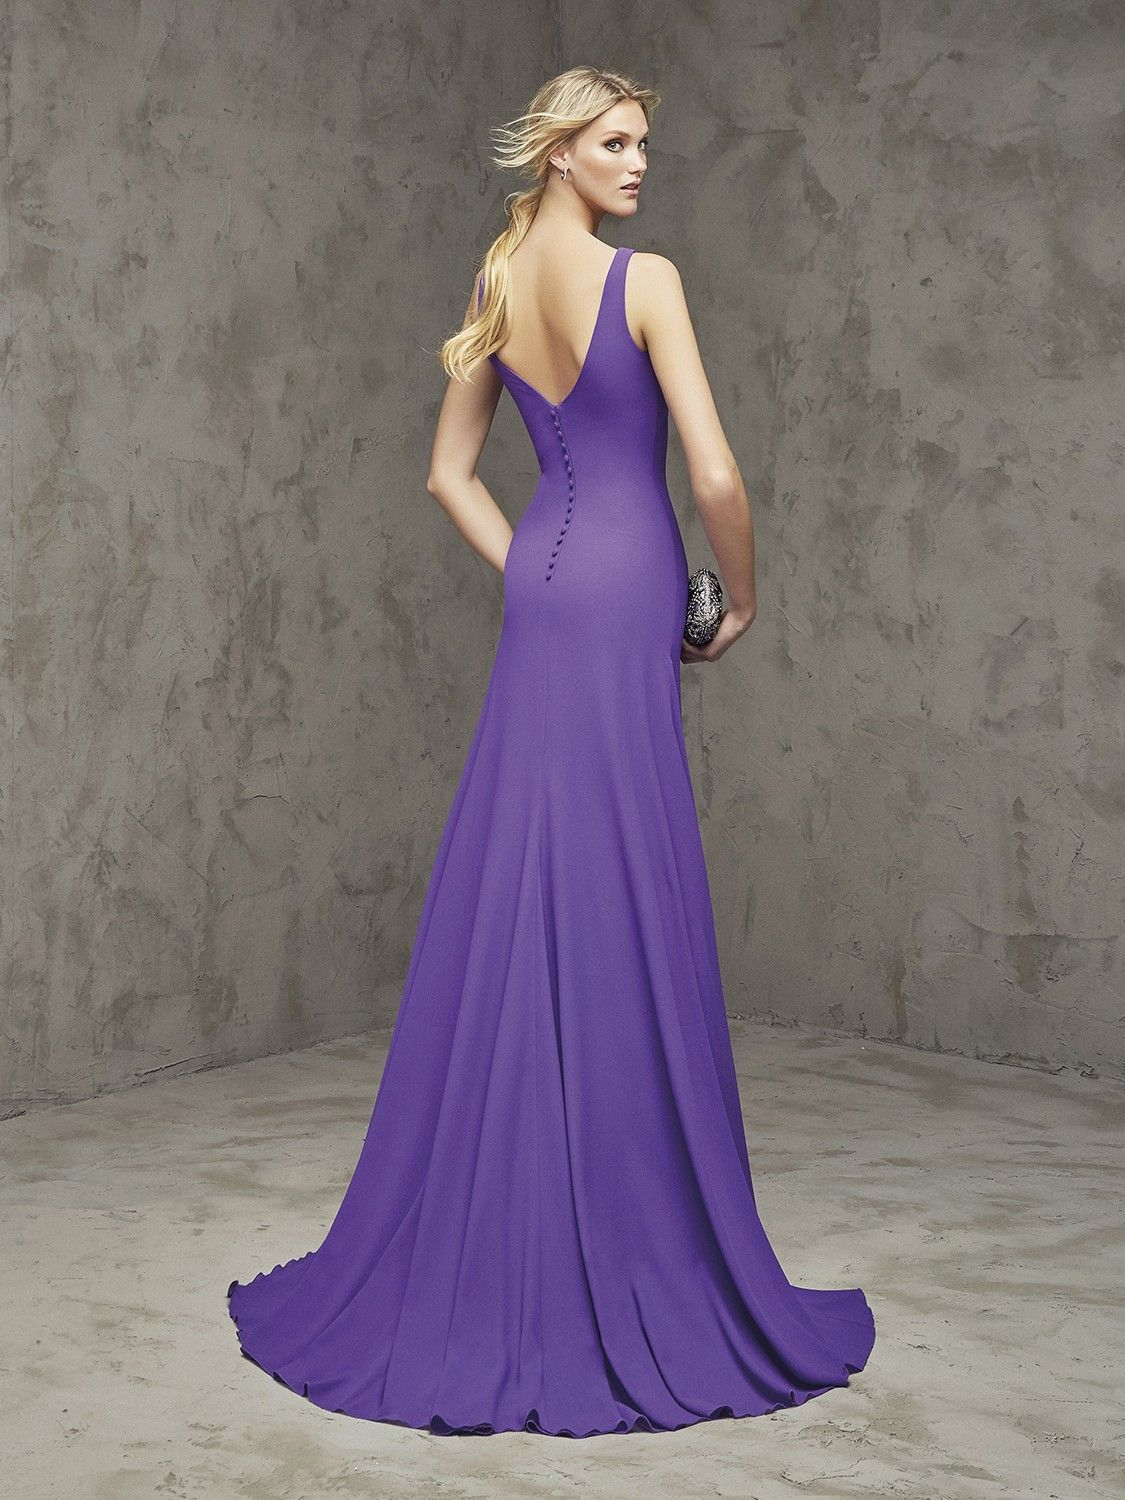 Vestido largo color lila de fiesta | Gala | Pinterest | Color lila ...